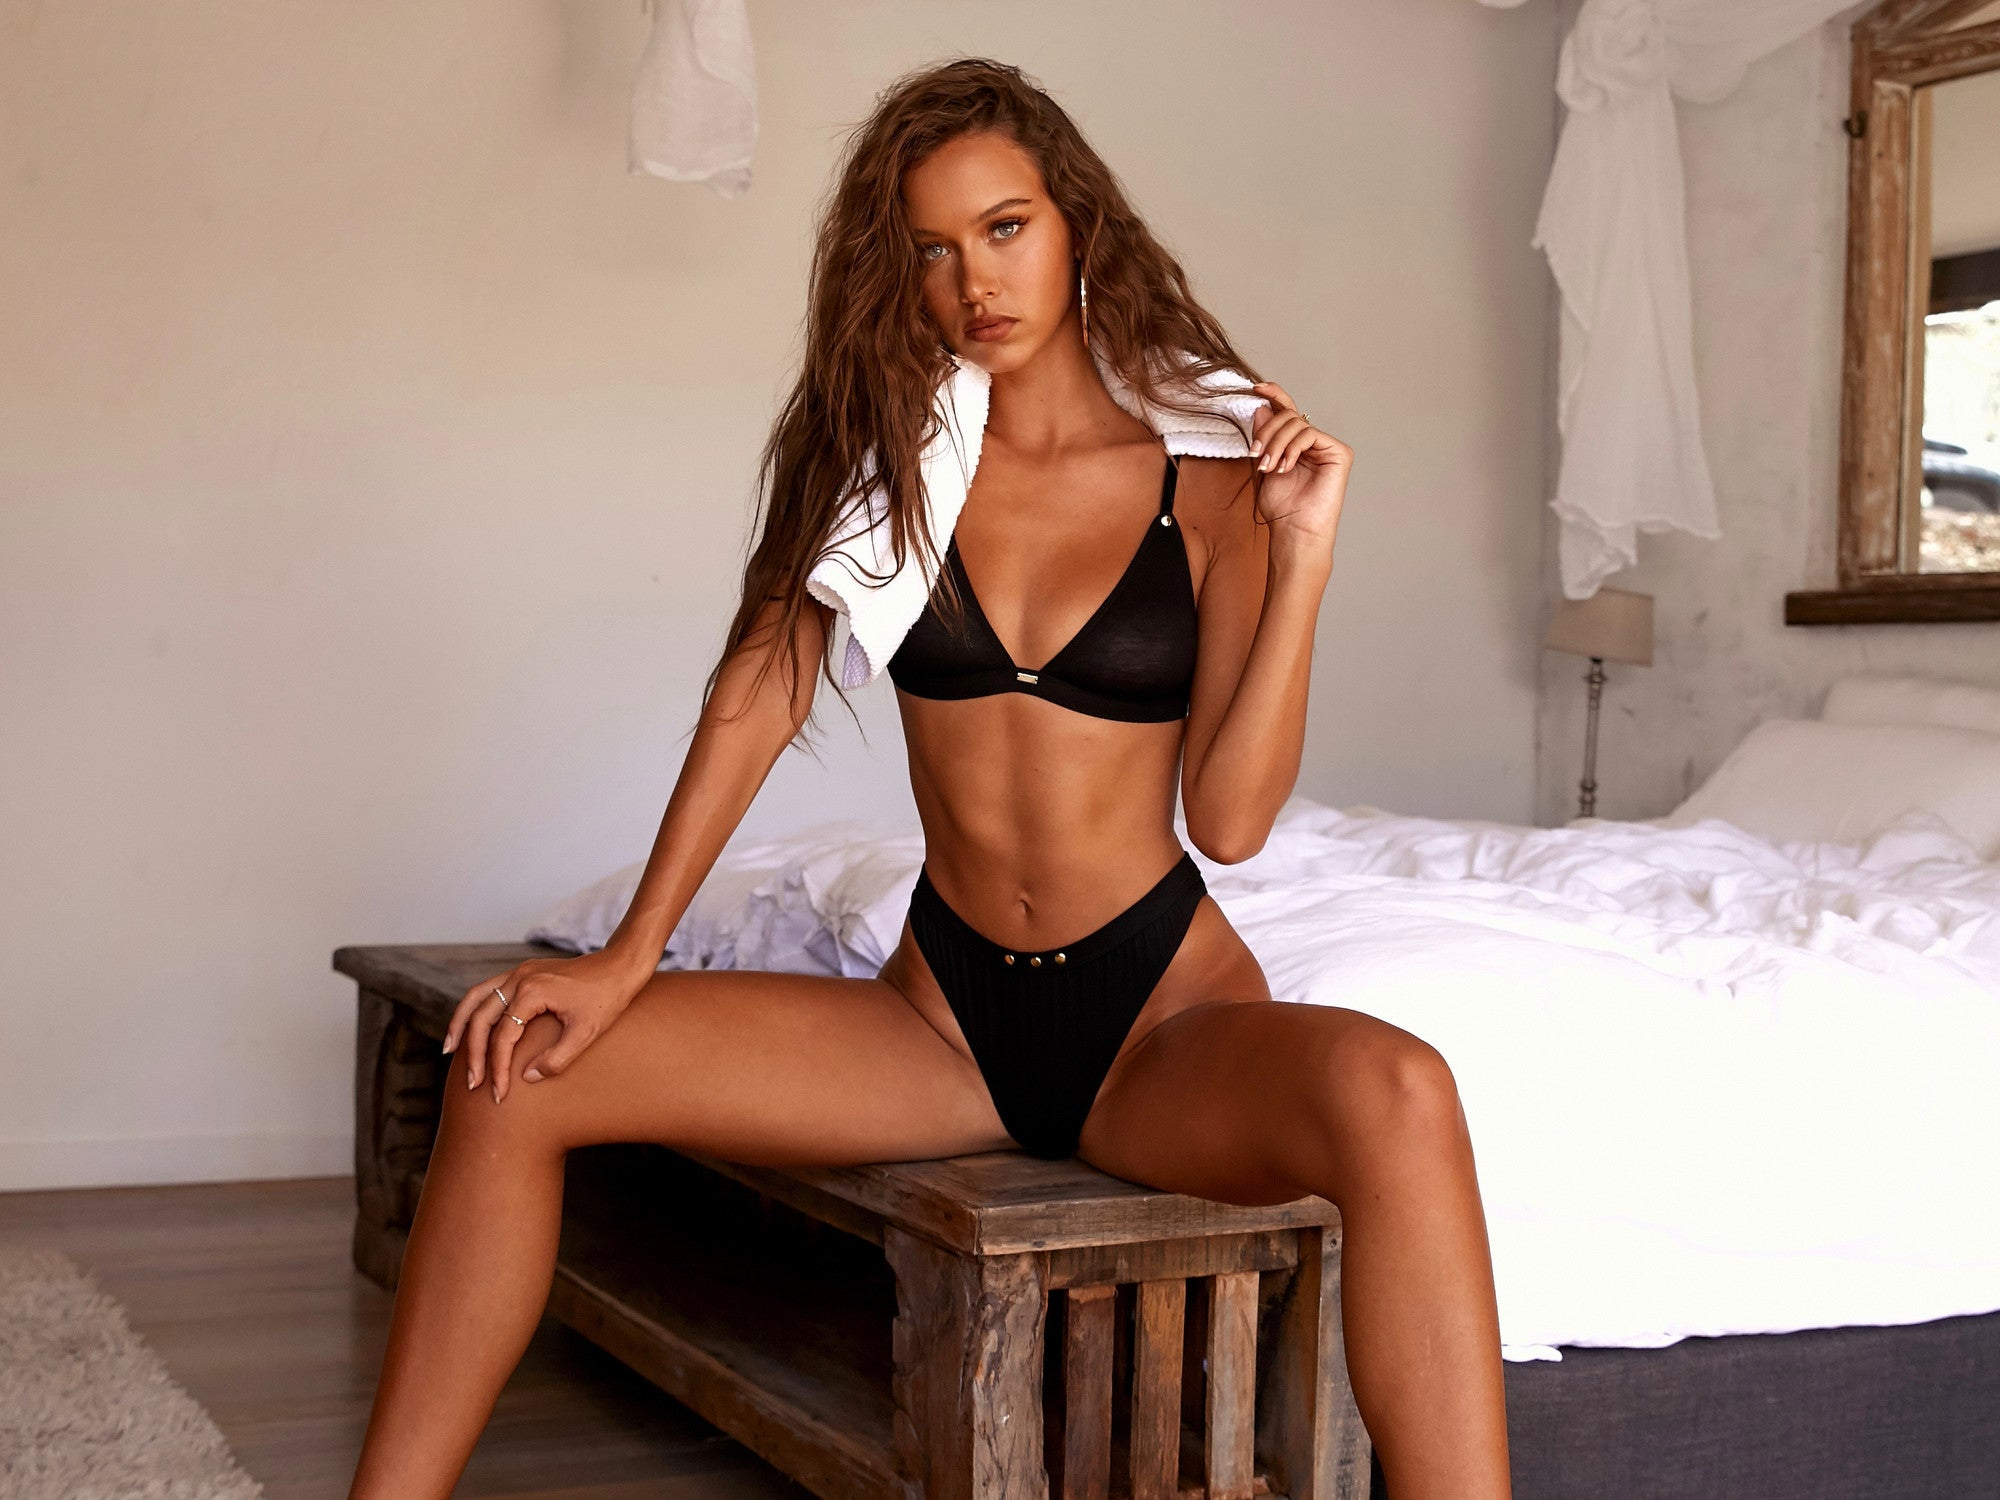 Isabelle Mathers wearing the IAM Black Triangle Bra and Cheeky Brief while sitting down on a bed stool